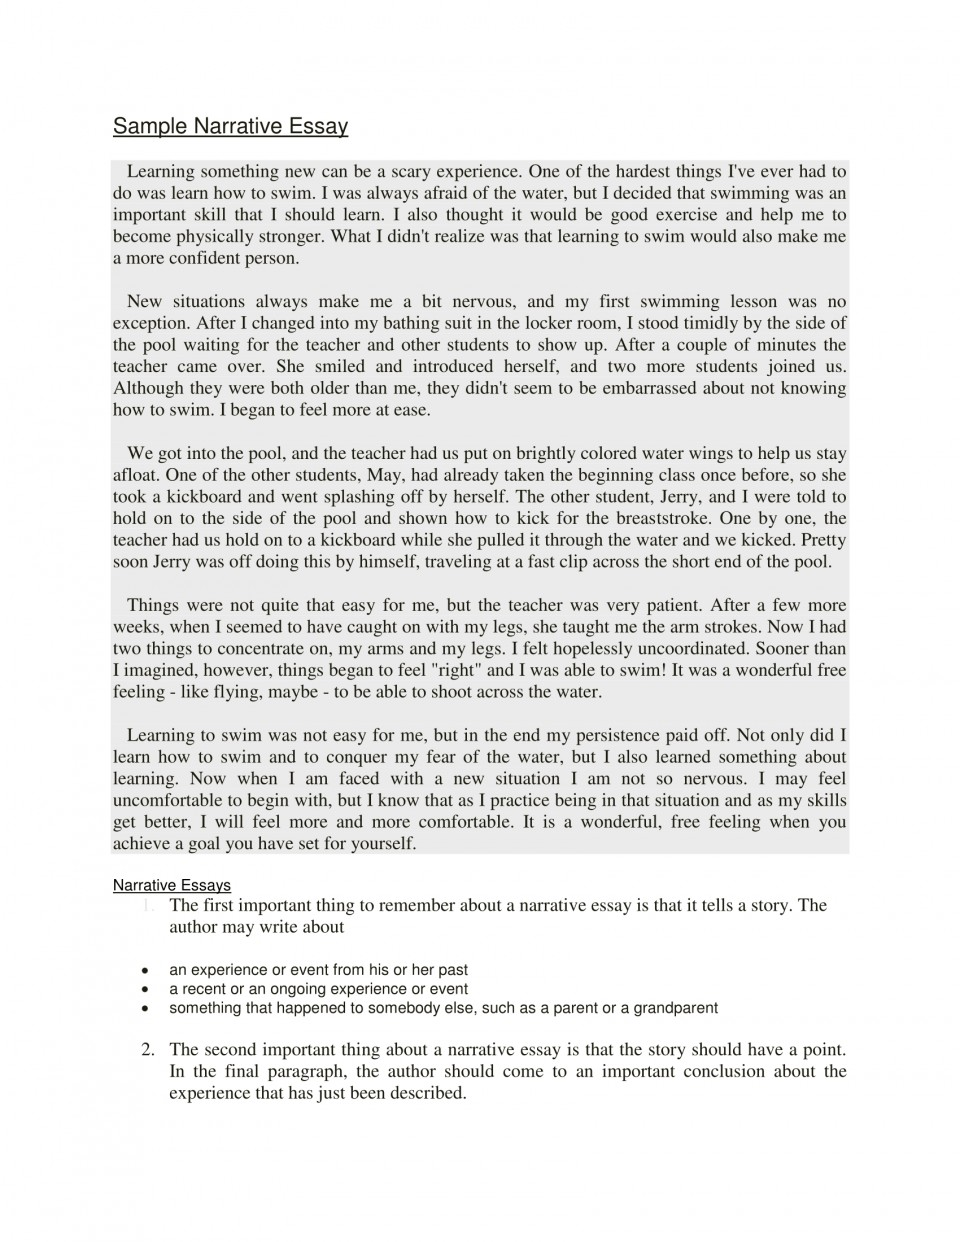 008 Example Of Narrative Essay Beneficial Examples Samples Writing Ppt Brown Achievement The Martial Ars Competit About Being Judged Quizlet 4th Grade Someone Else Step Imposing A Introduction Format Love 960